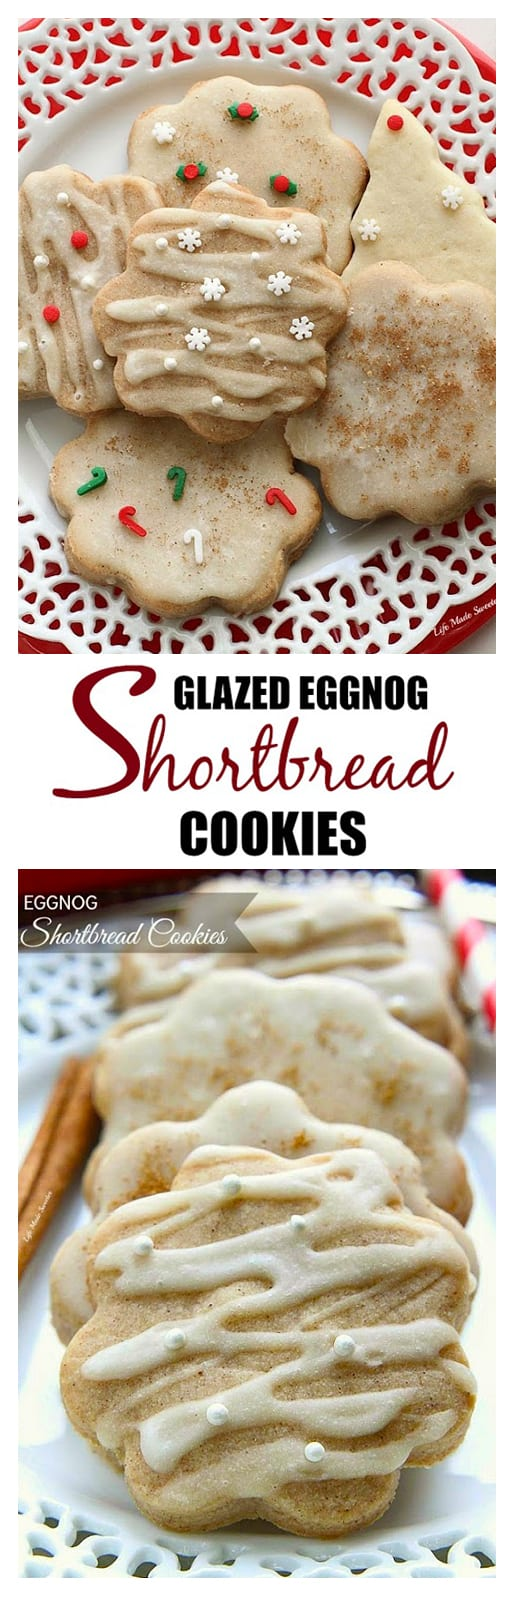 Glazed eggnog shortbread cookies are perfect for the holiday season